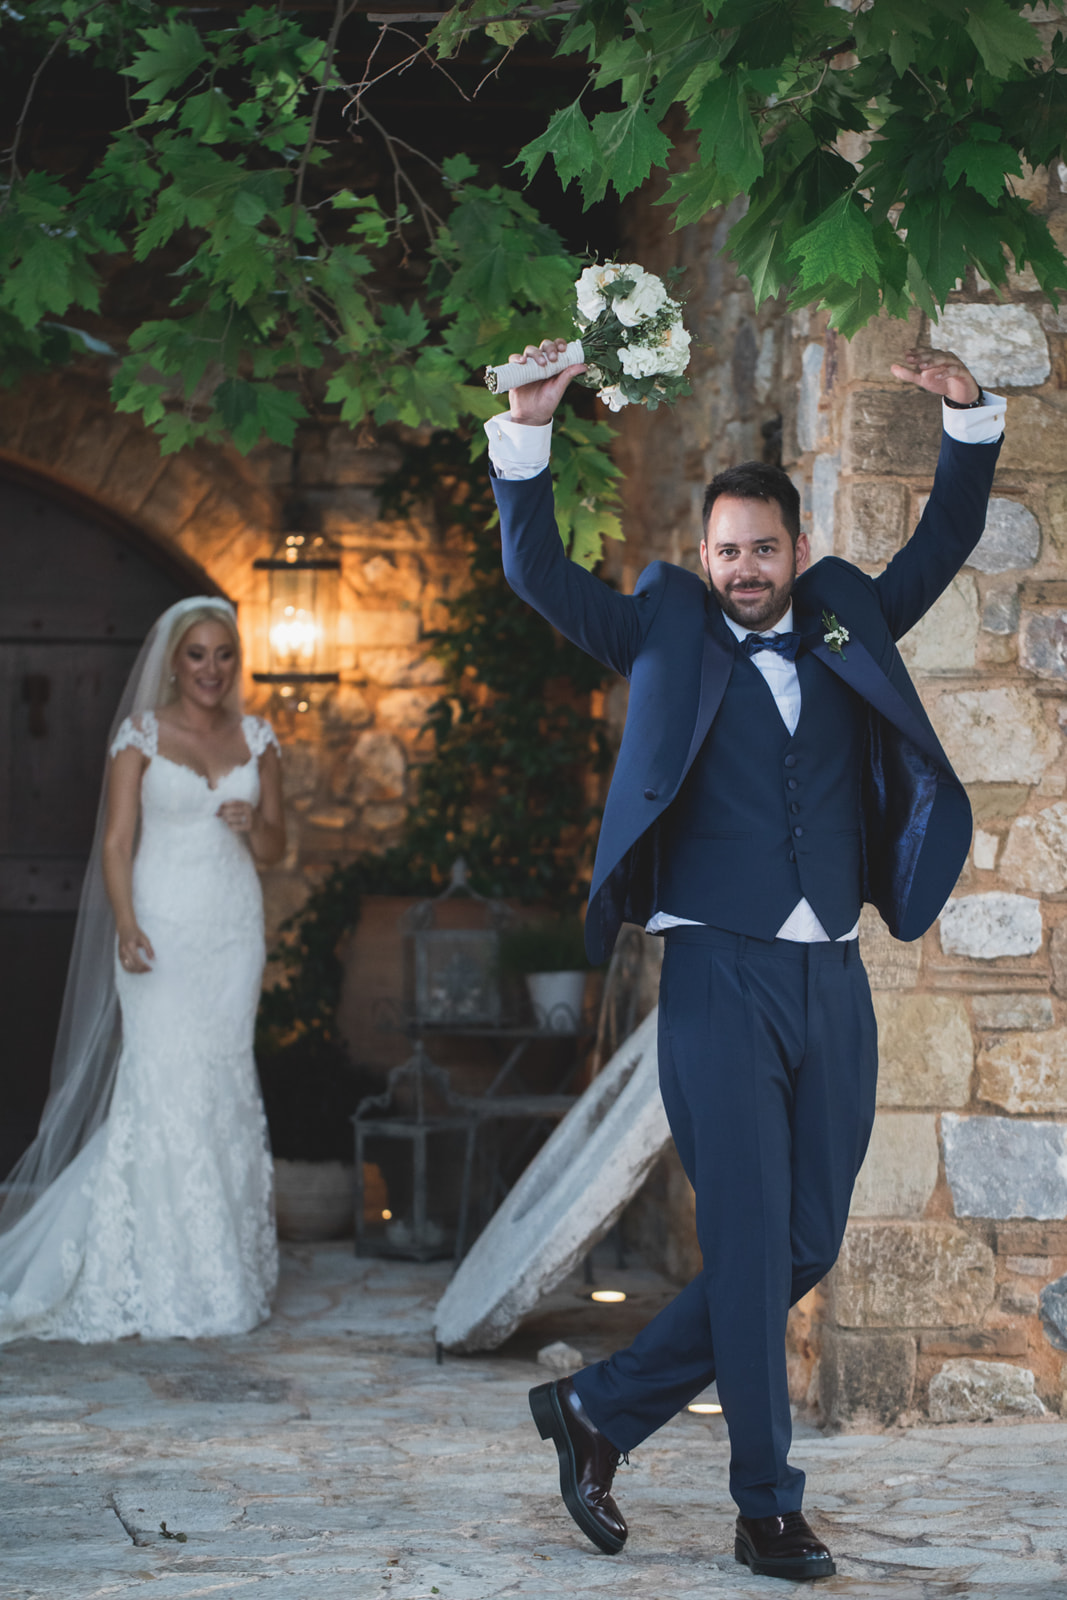 The dream wedding of George and Giouli gallery image 1